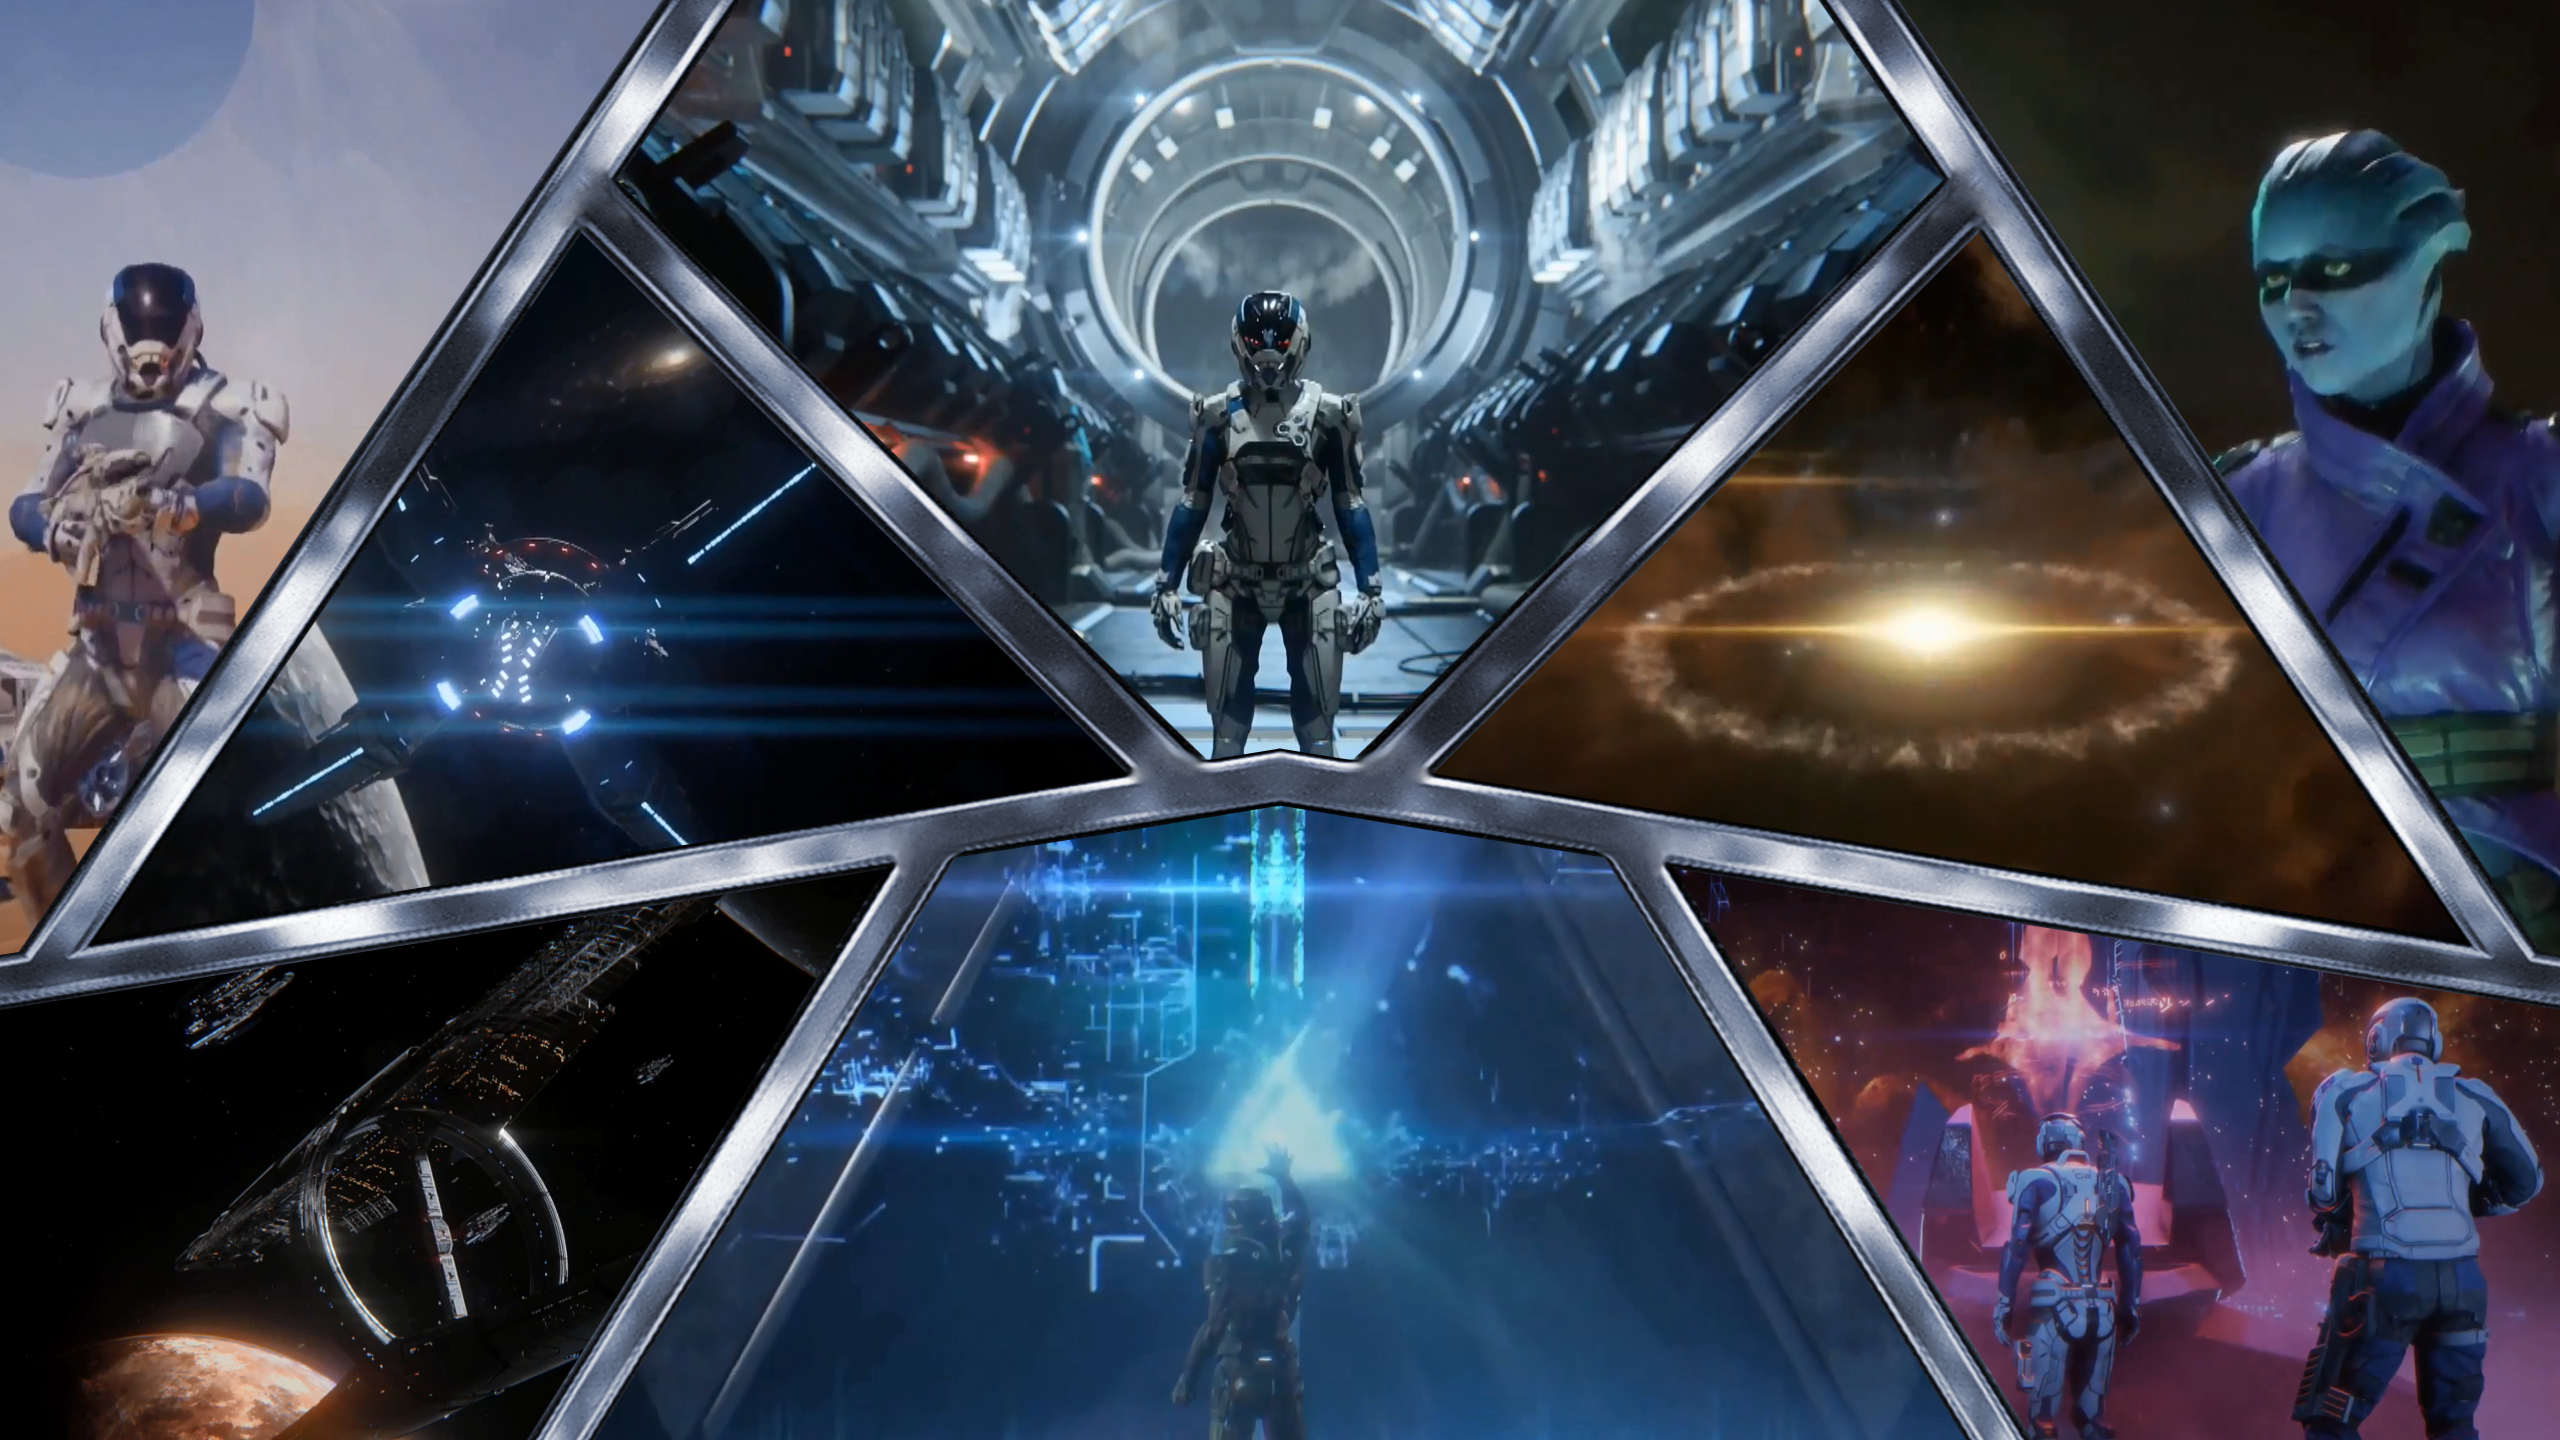 Mass Effect Andromeda Wallpaper: Mass Effect Andromeda Arkship Wallpaper By Hyperion127 On